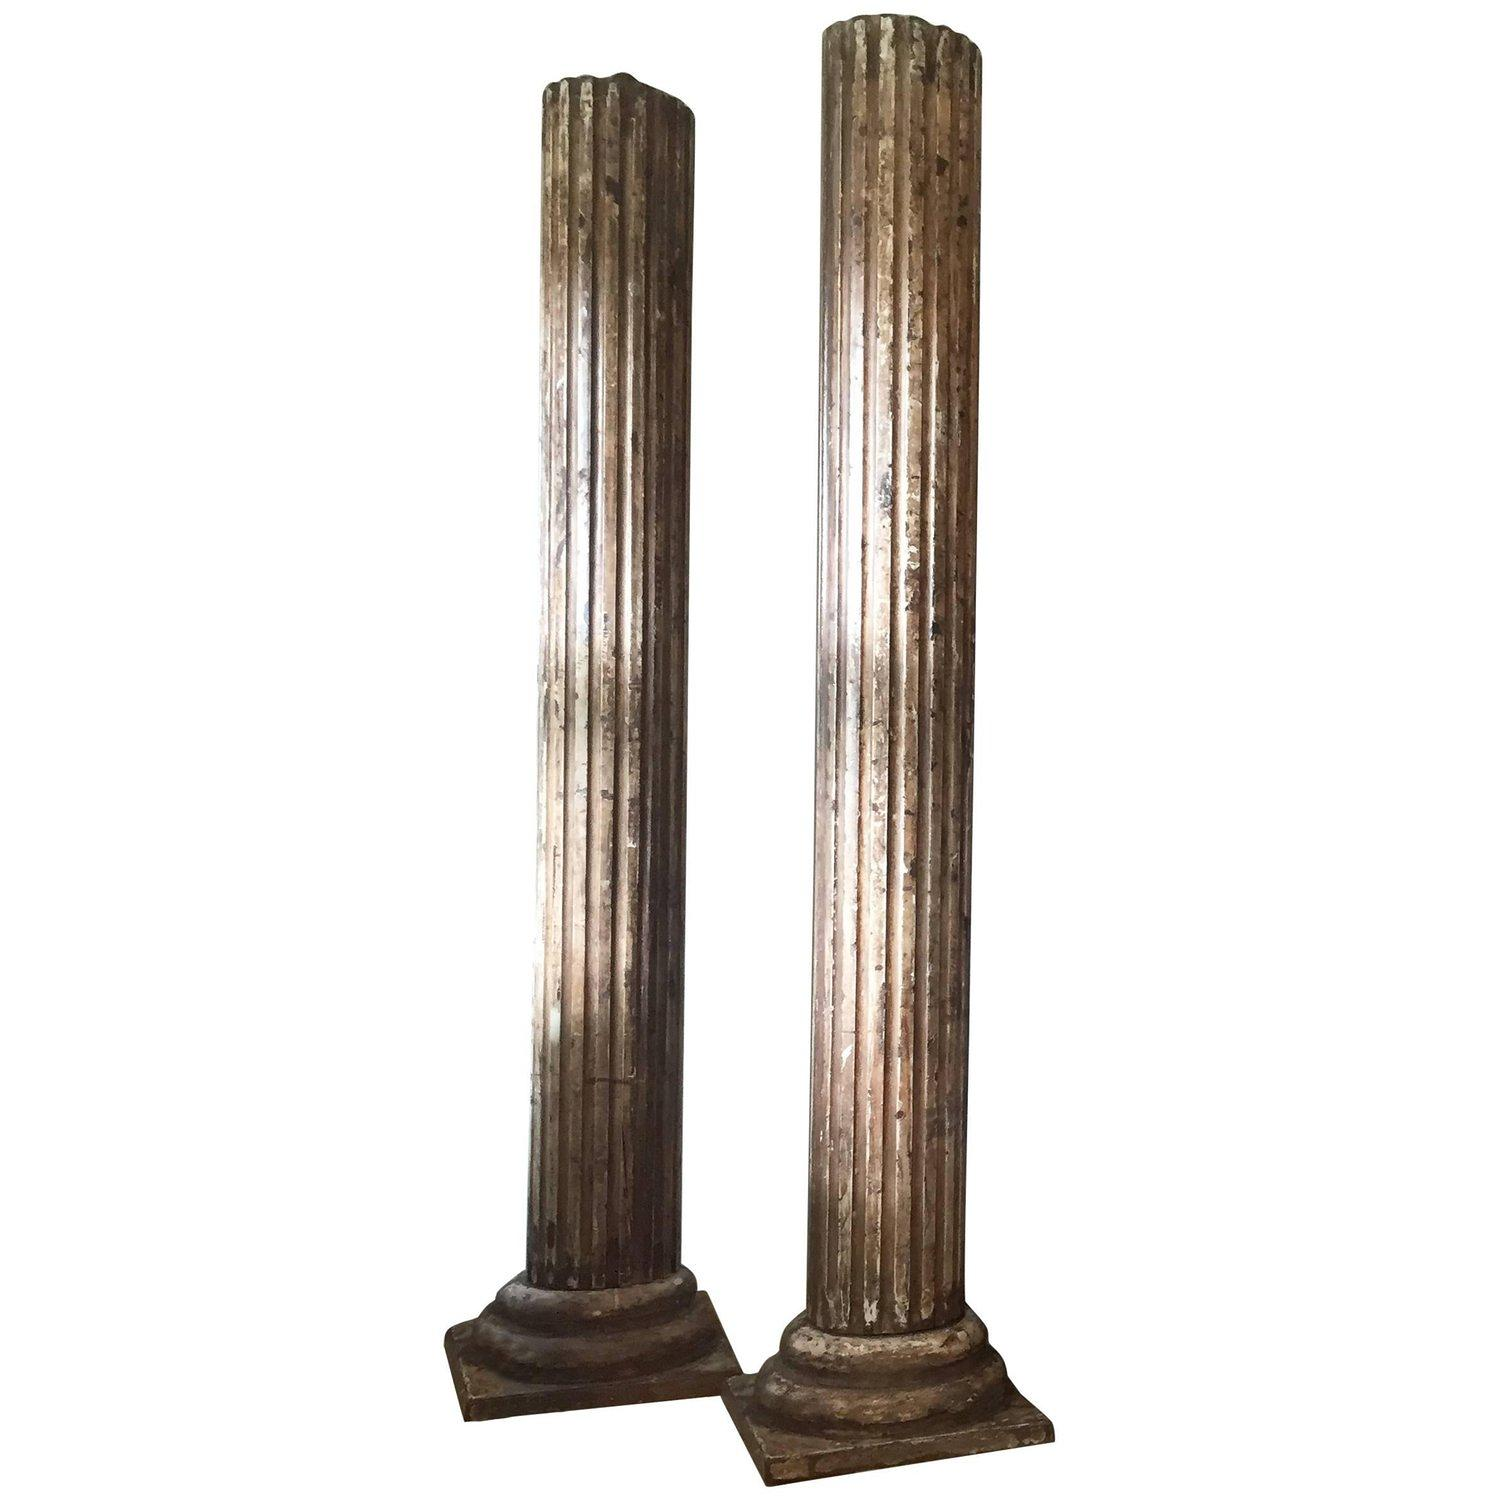 Pair of Impressive decorative Large Columns